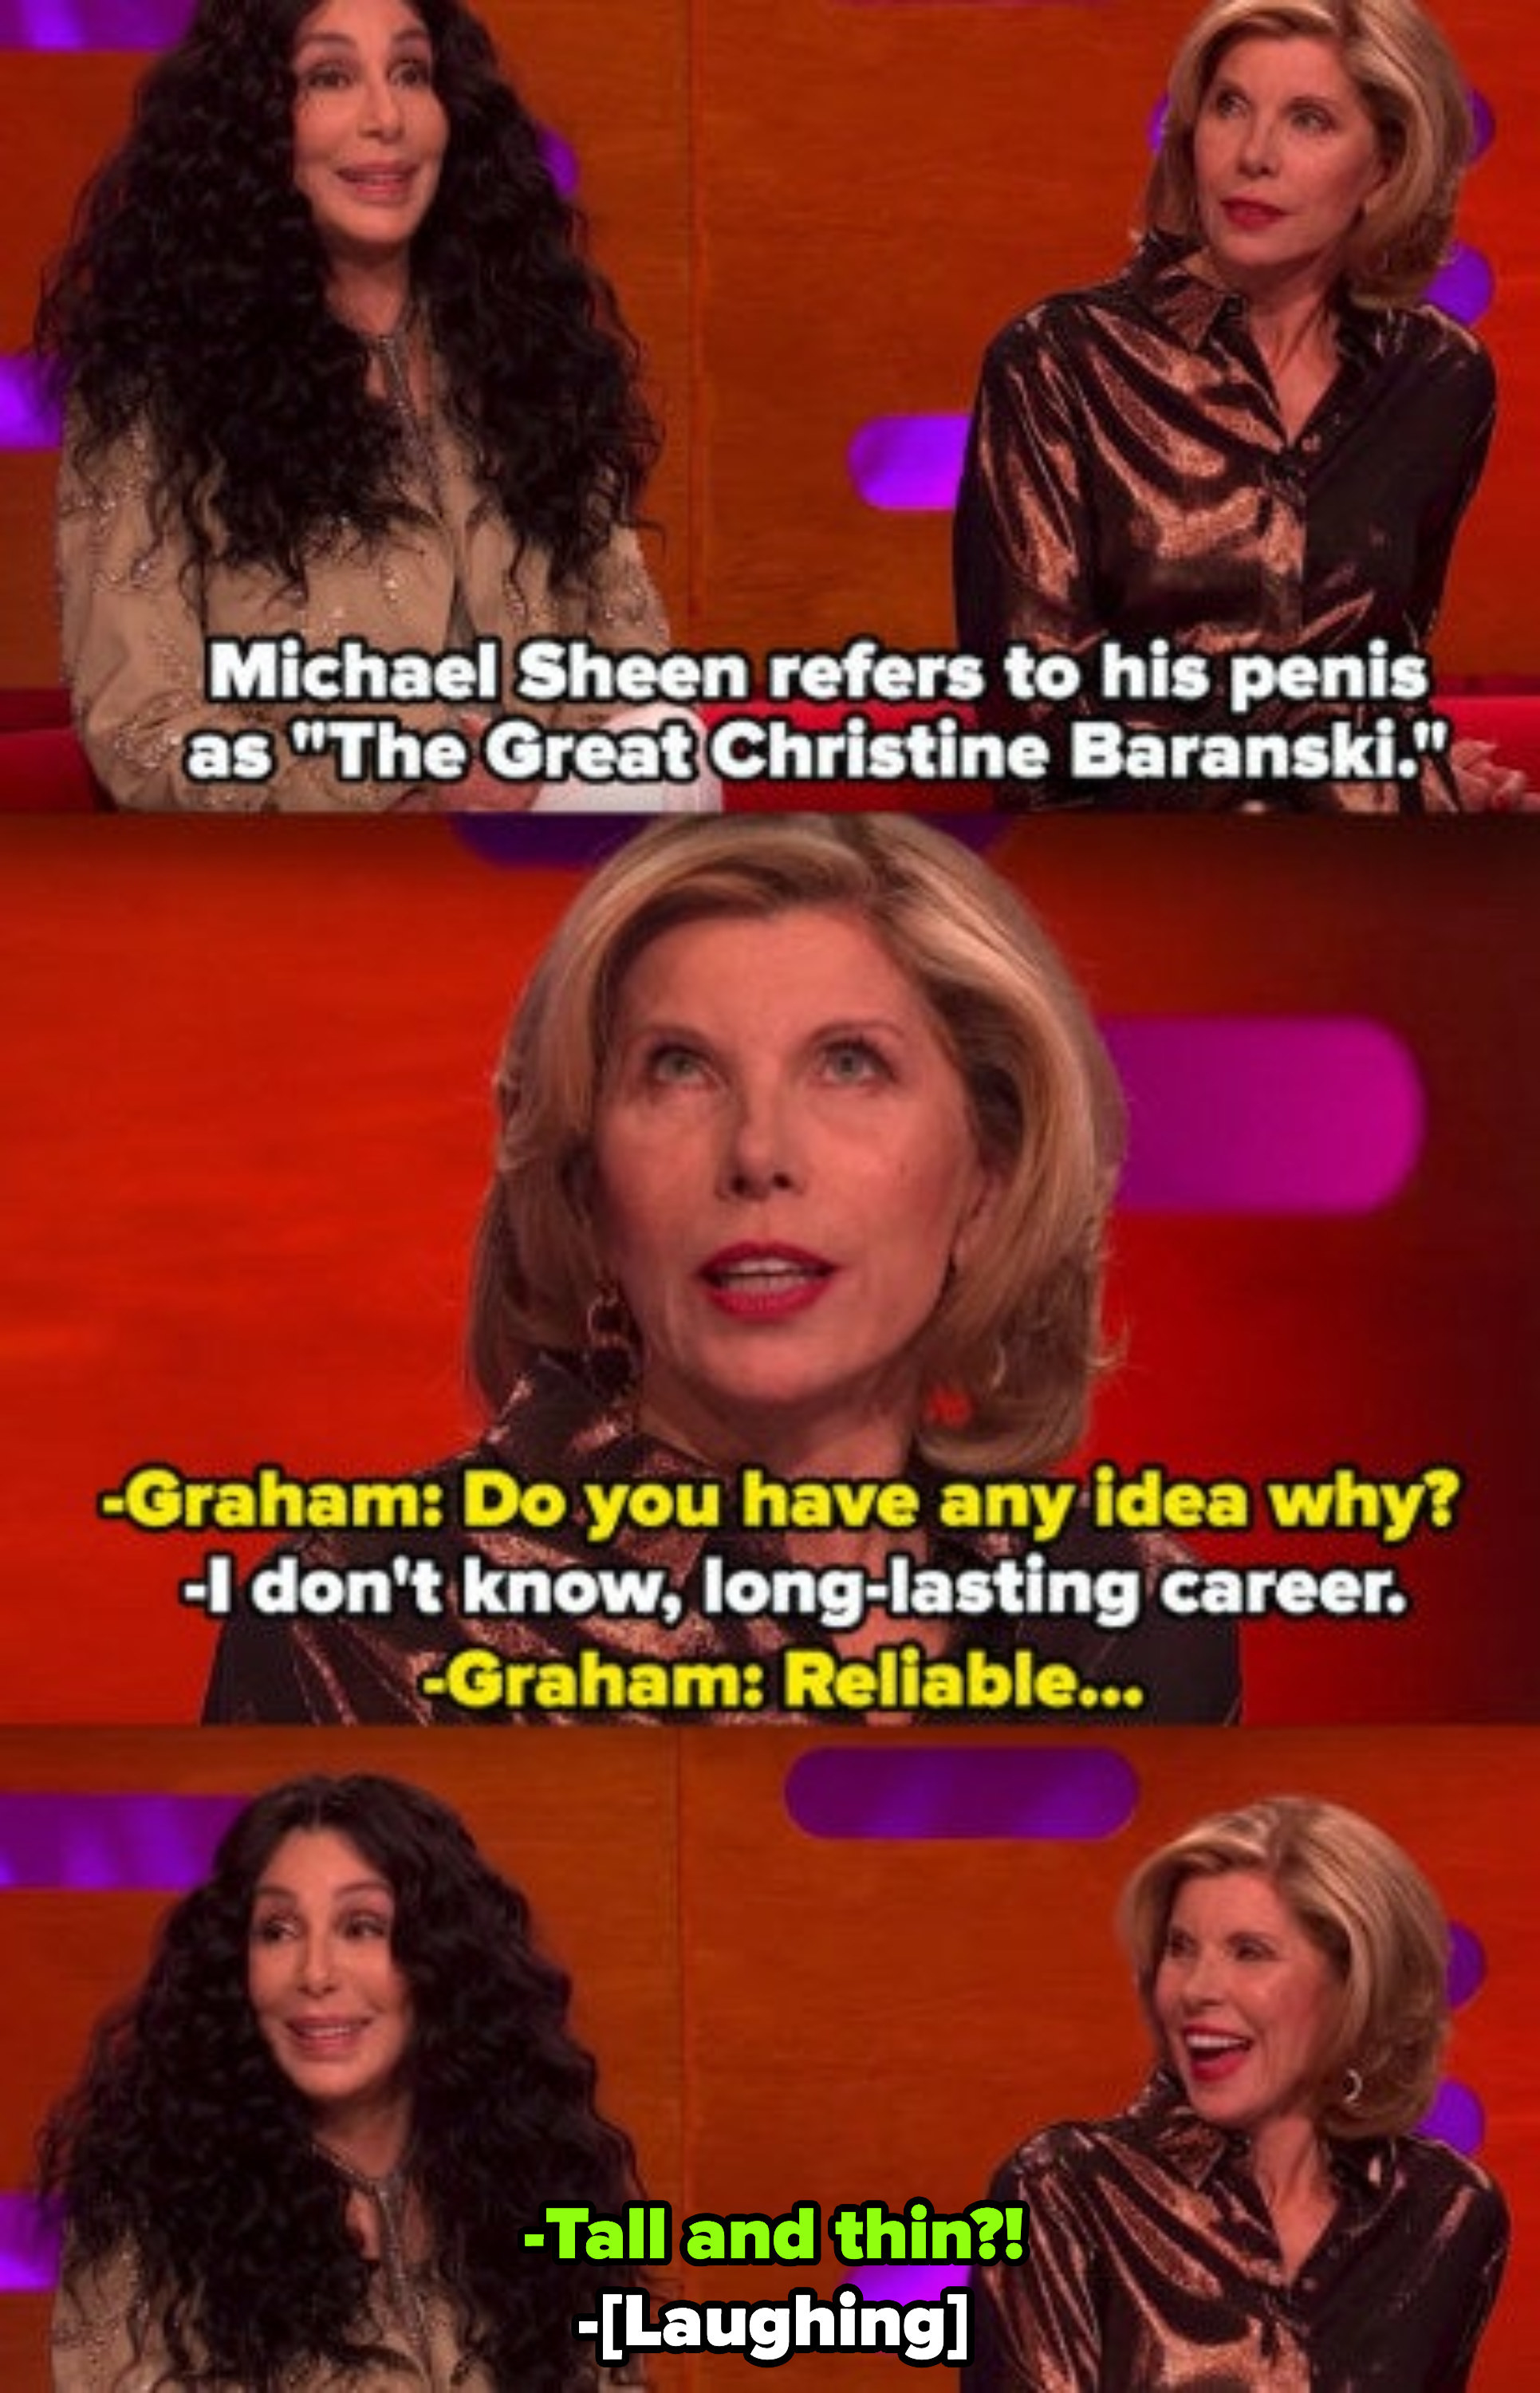 """Cher making a joke as to why Michael Sheen might've nicknamed his penis """"The Great Christine Baranski"""" because it's """"tall and thin"""""""